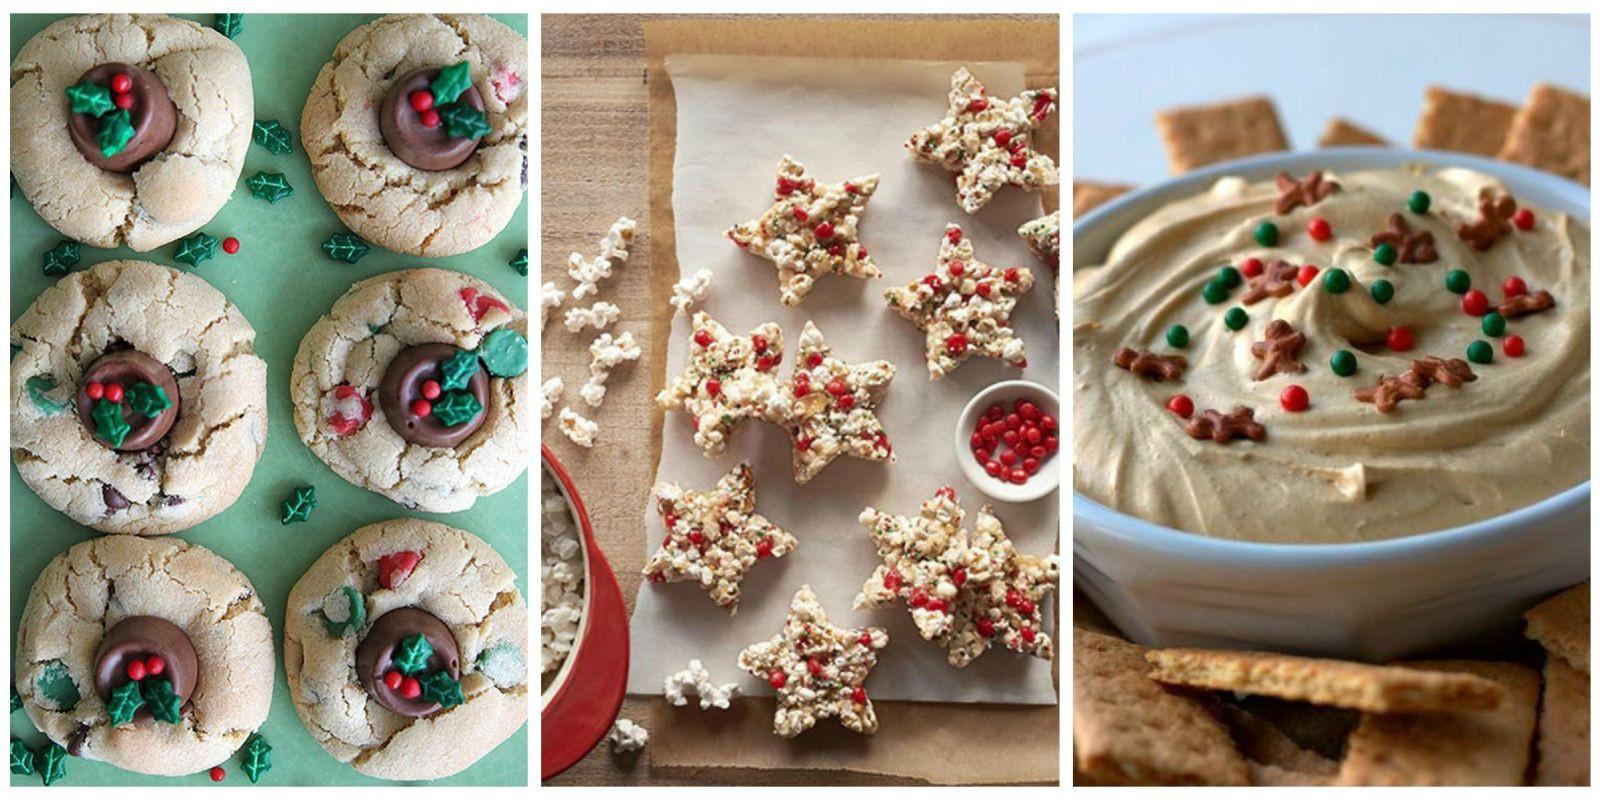 Easy To Make Christmas Desserts  40 Easy Christmas Desserts Best Recipes and Ideas for